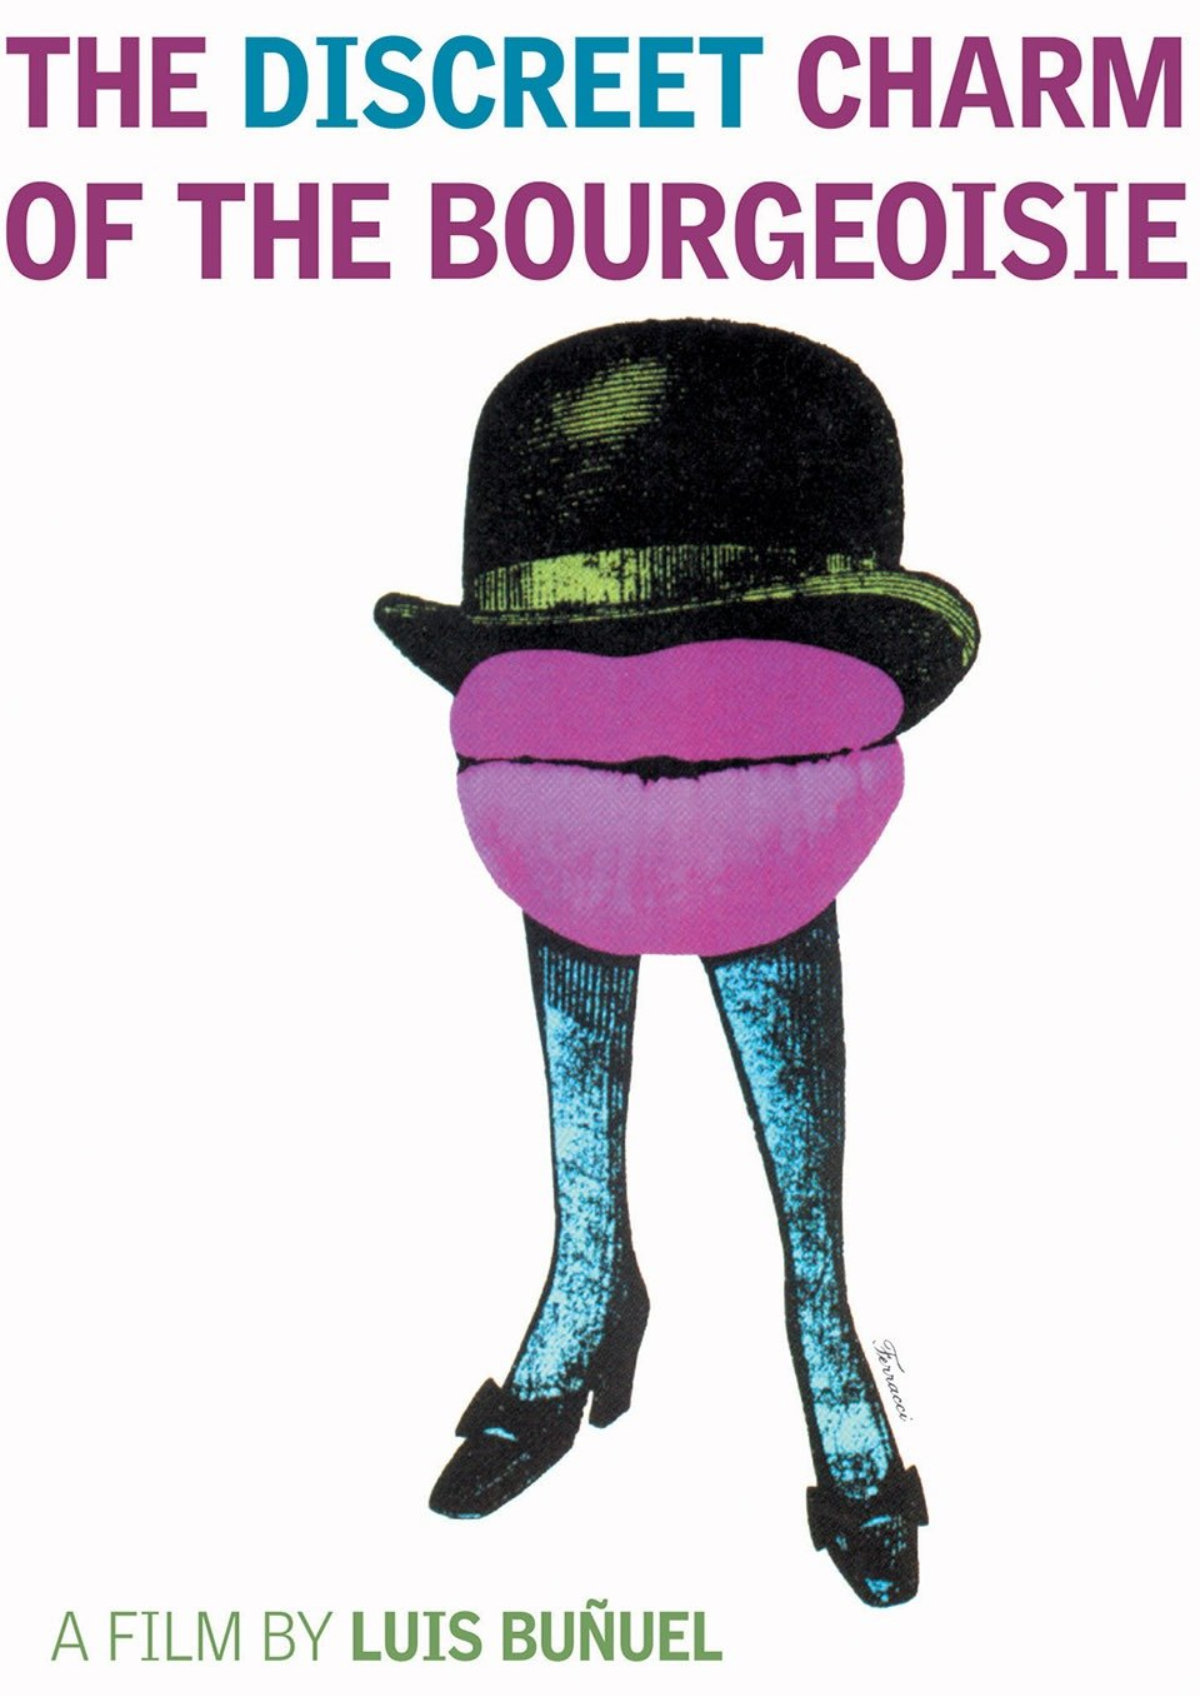 'The Discreet Charm Of The Bourgeoisie (Le Charme Discret De La Bourgeoisie)' movie poster